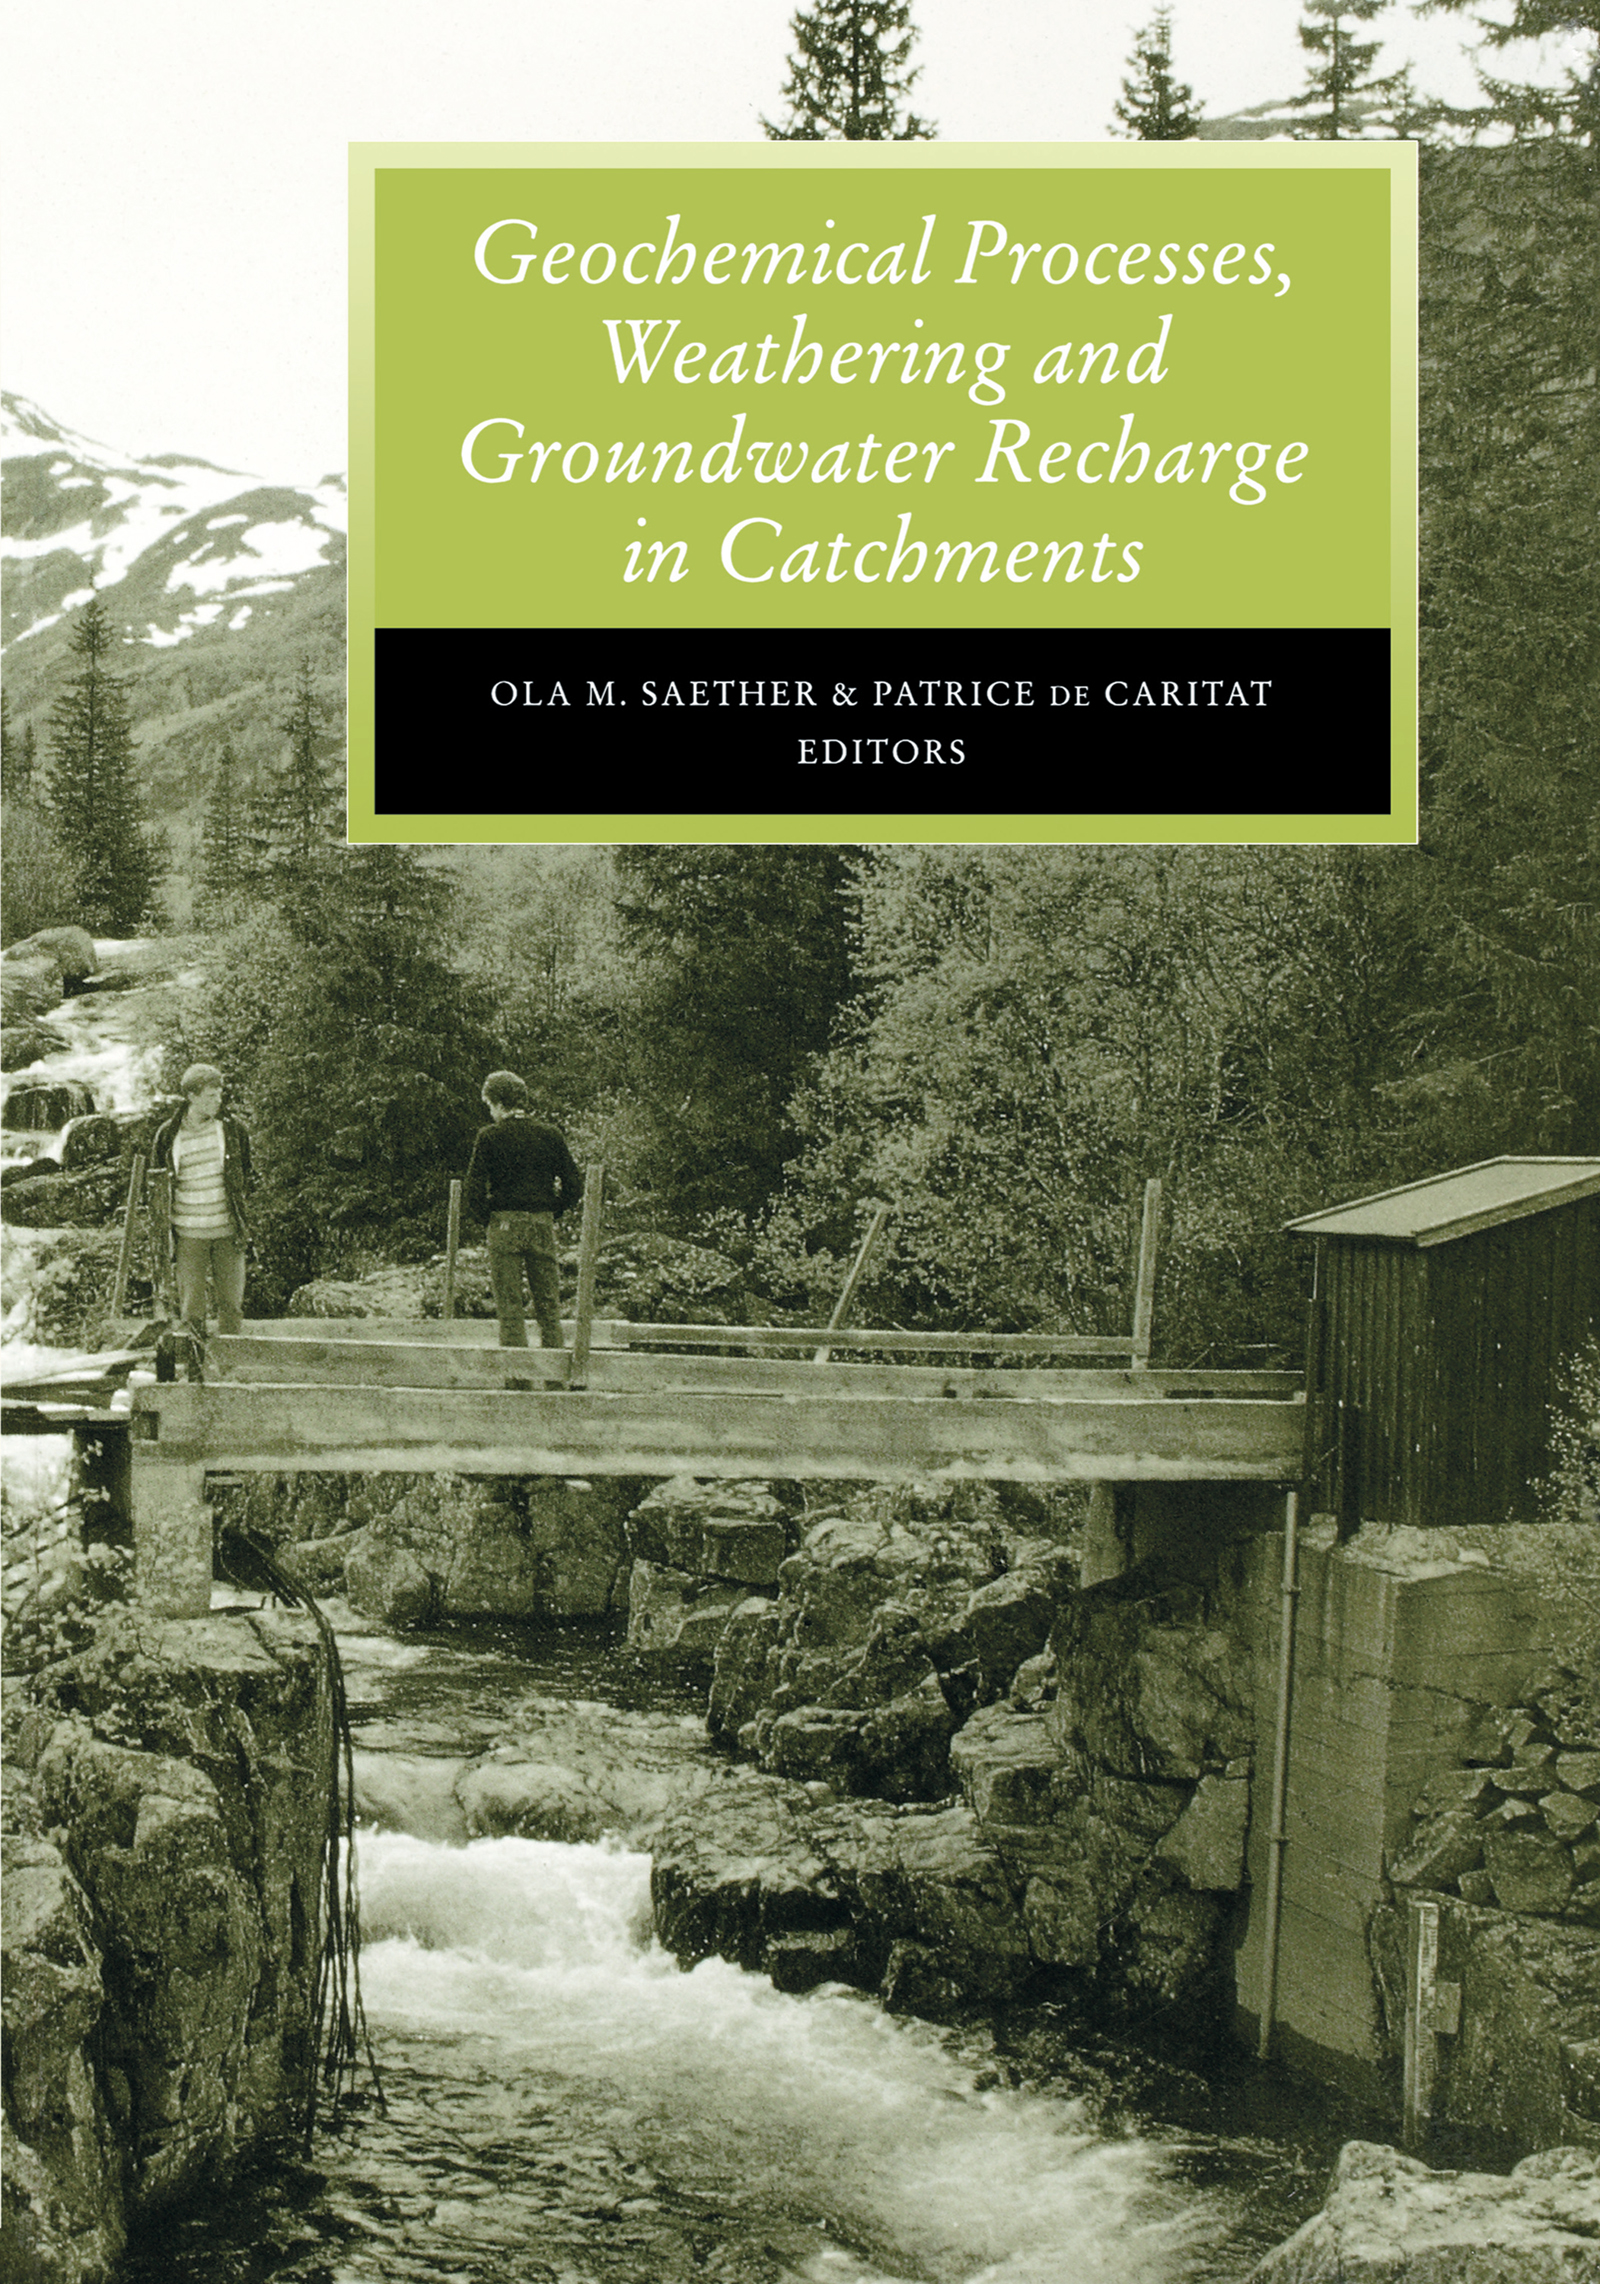 Geochemical Processes, Weathering and Groundwater Recharge in Catchments